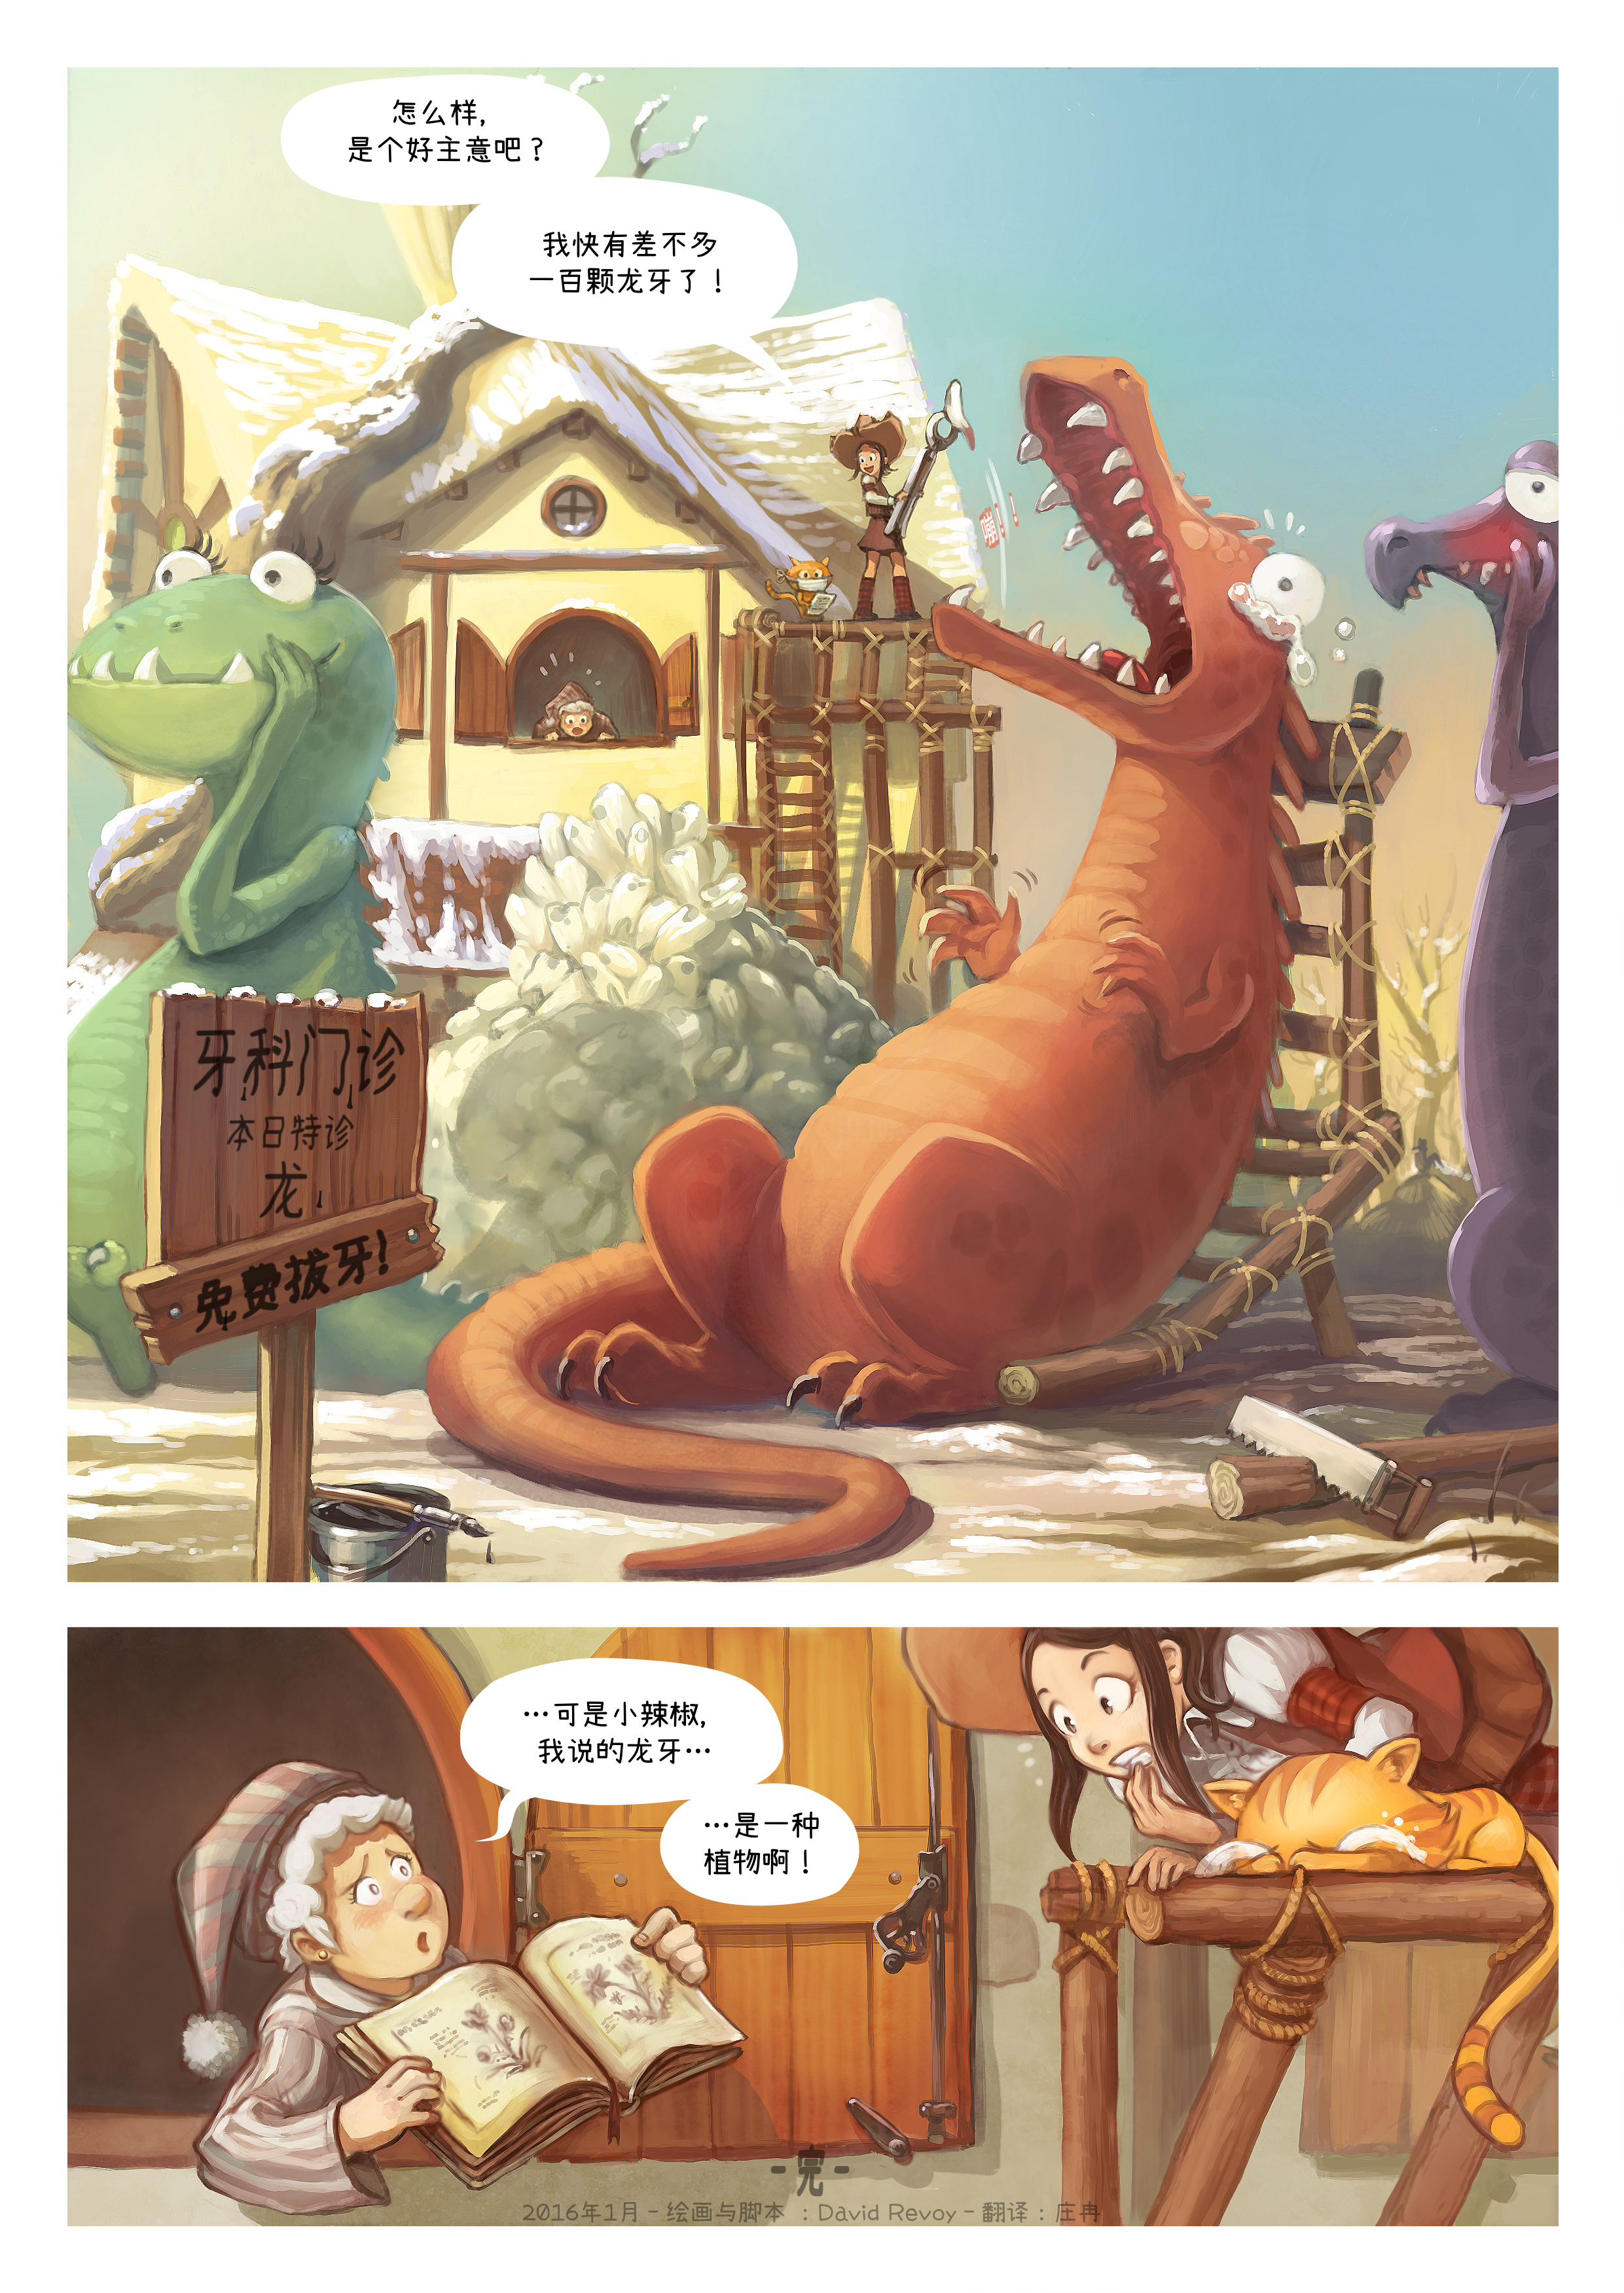 A webcomic page of Pepper&Carrot, 漫画全集 14 [cn], 页面 6